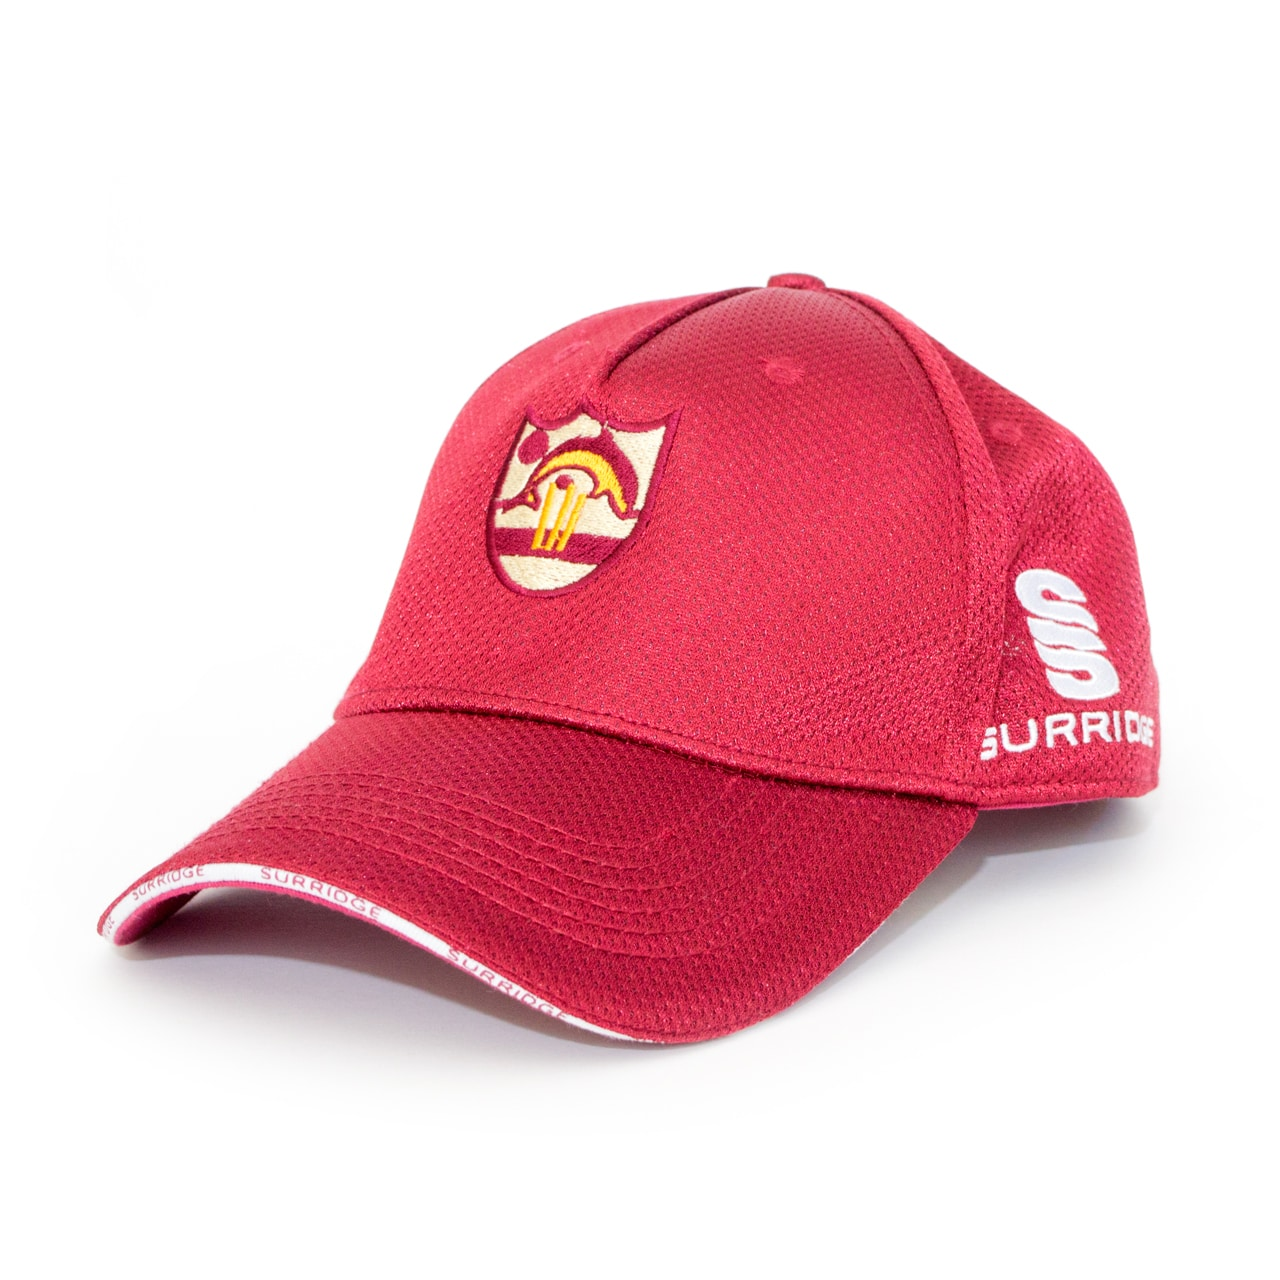 Red Embroidered Personalised Cap From Jageto Embroidery and Print in Braintree Essex in the UK